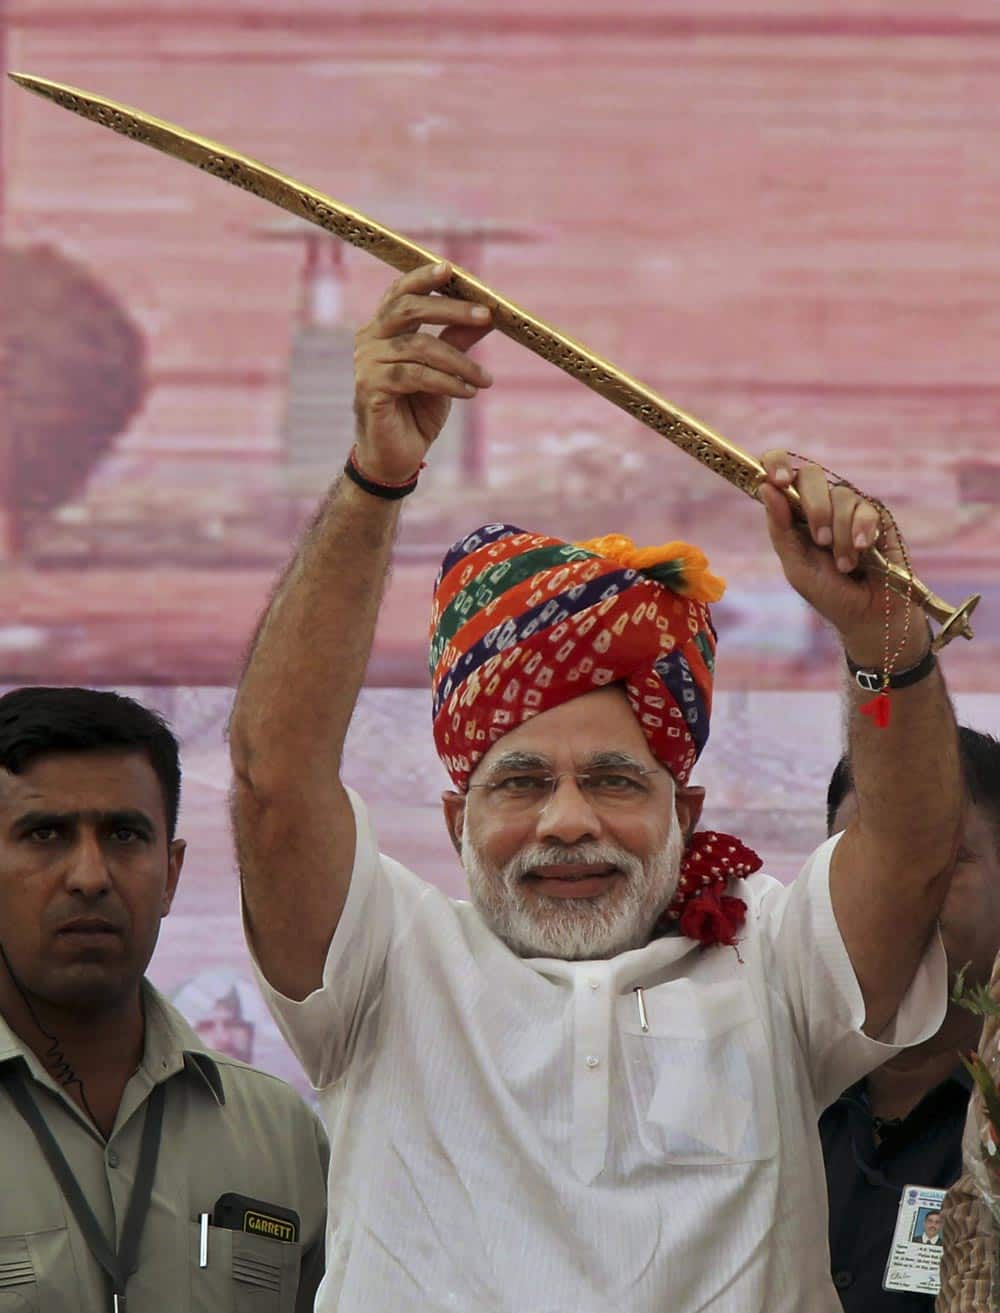 Gujarat Chief Minister Narendra Modi raises a sword that was presented to him at a rally in Rewari, Haryana state.